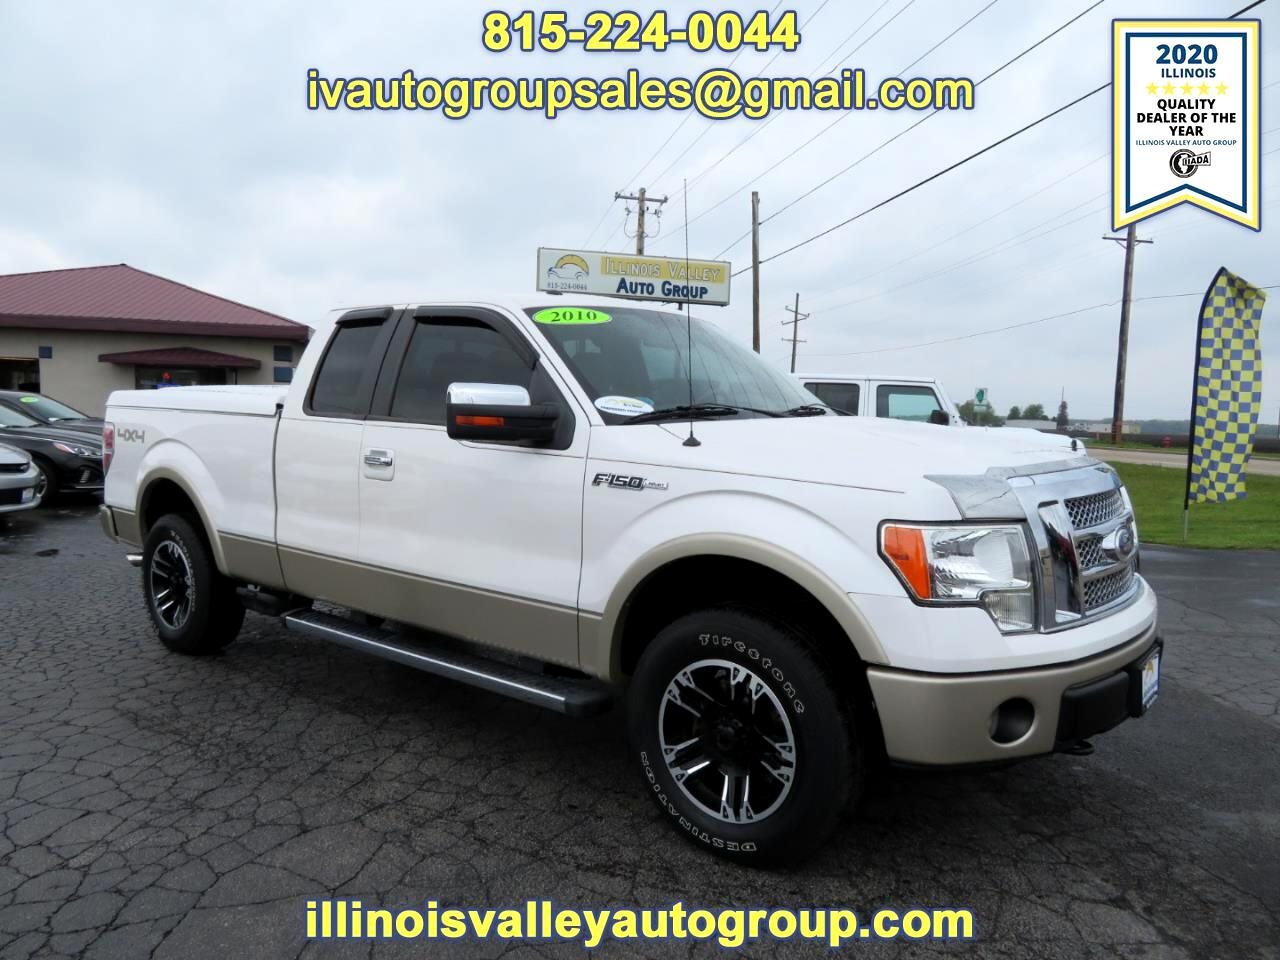 Ford F-150 Lariat SuperCab Short Bed 4WD 2010